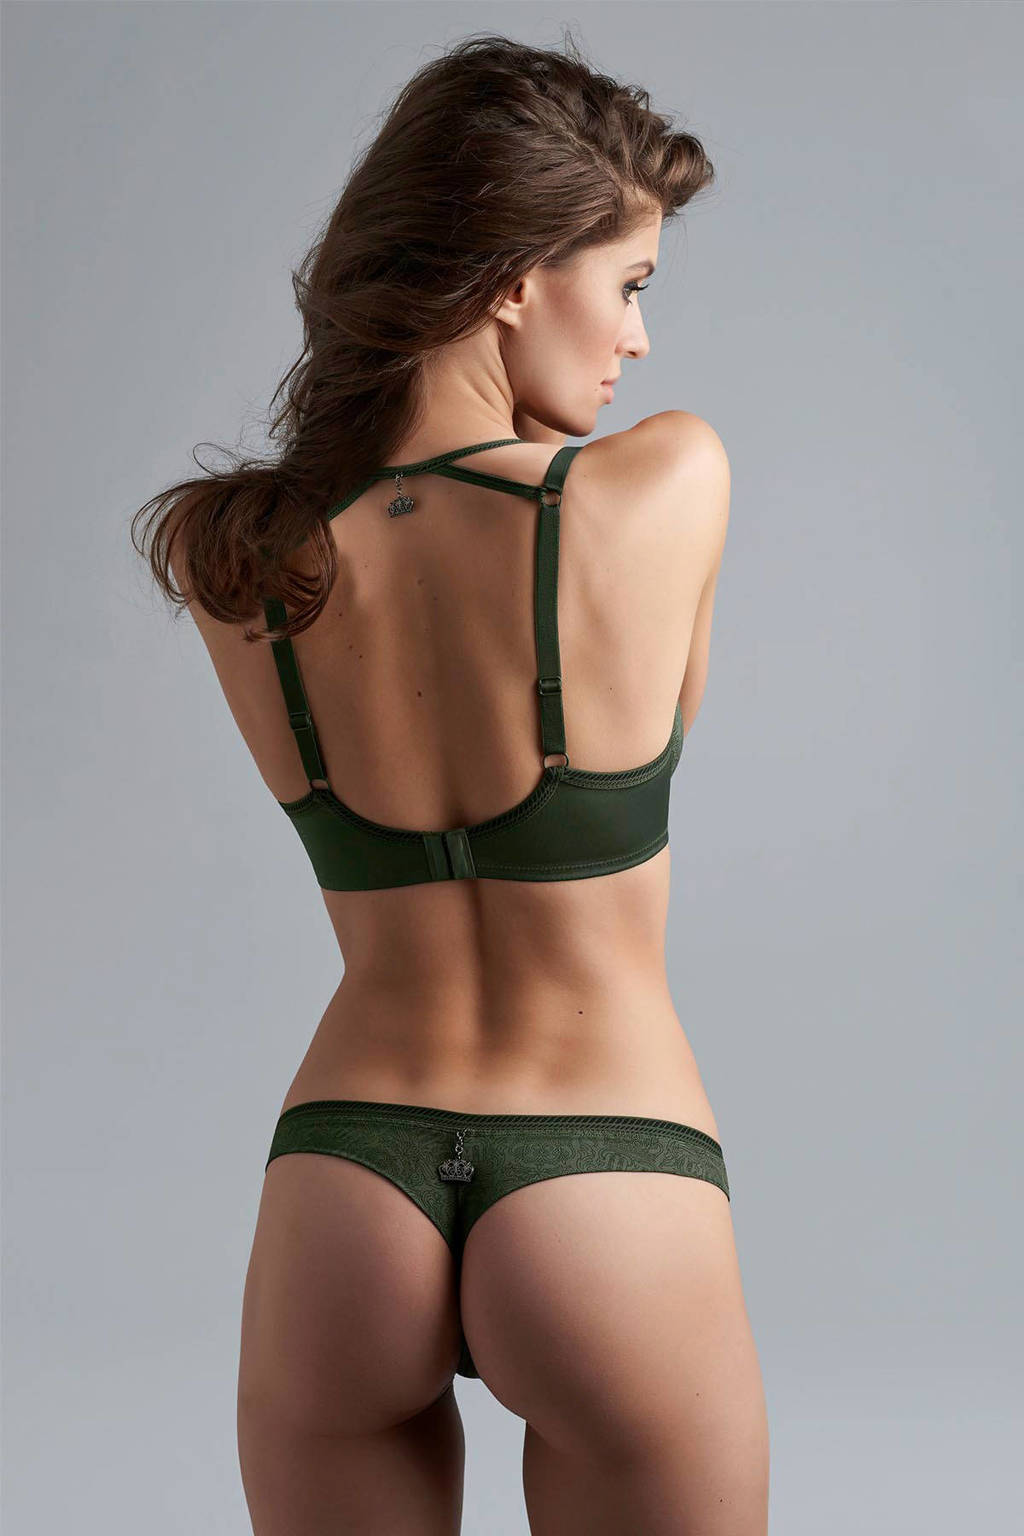 marlies dekkers string Crown Jewel, Donkergroen / zwart